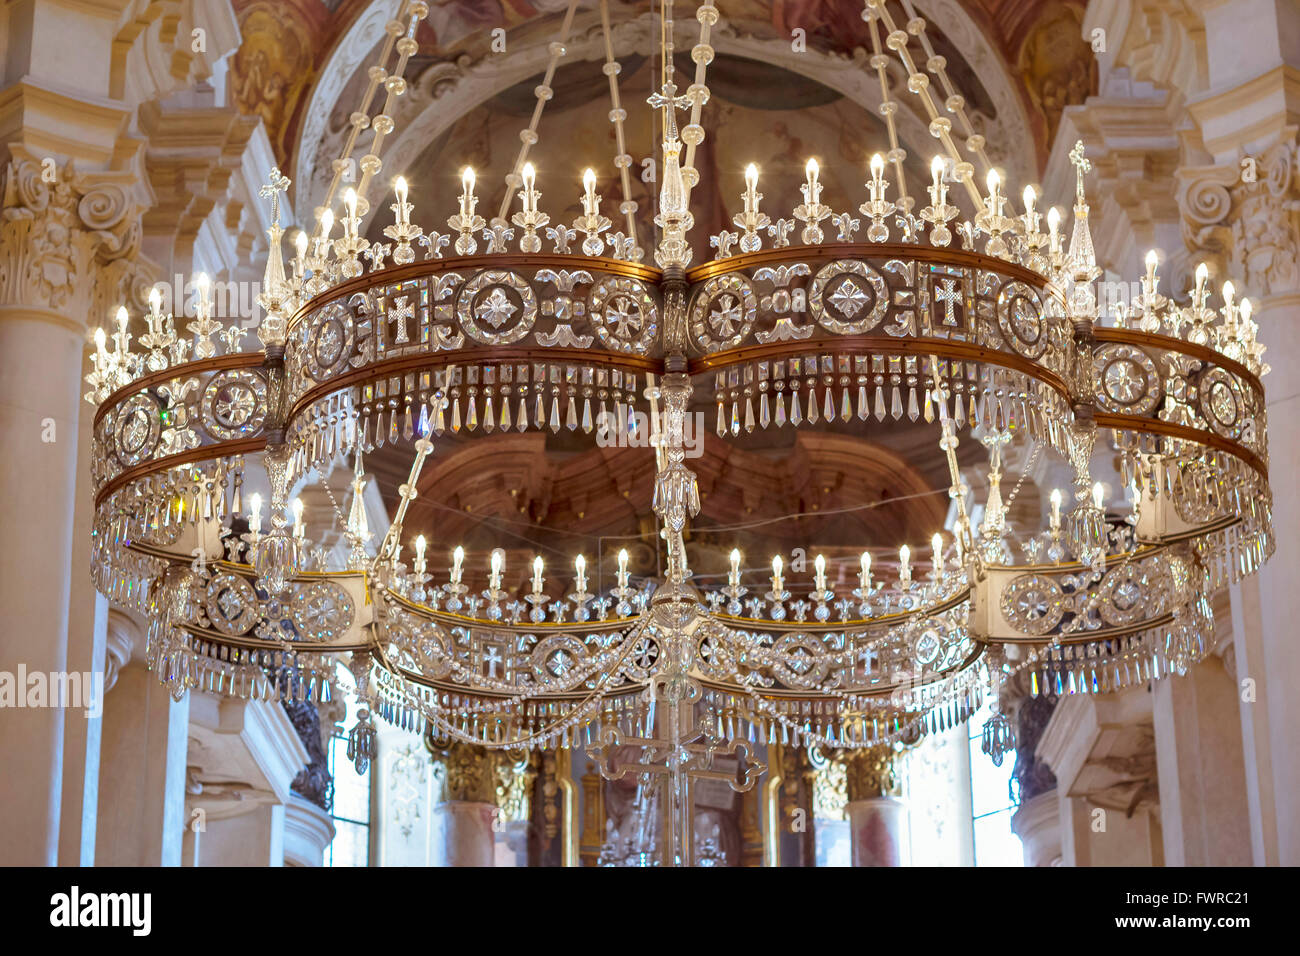 Prague czech republic august 27 2015 crystal chandelier with prague czech republic august 27 2015 crystal chandelier with candles in the cathedral of st nicholas aloadofball Image collections